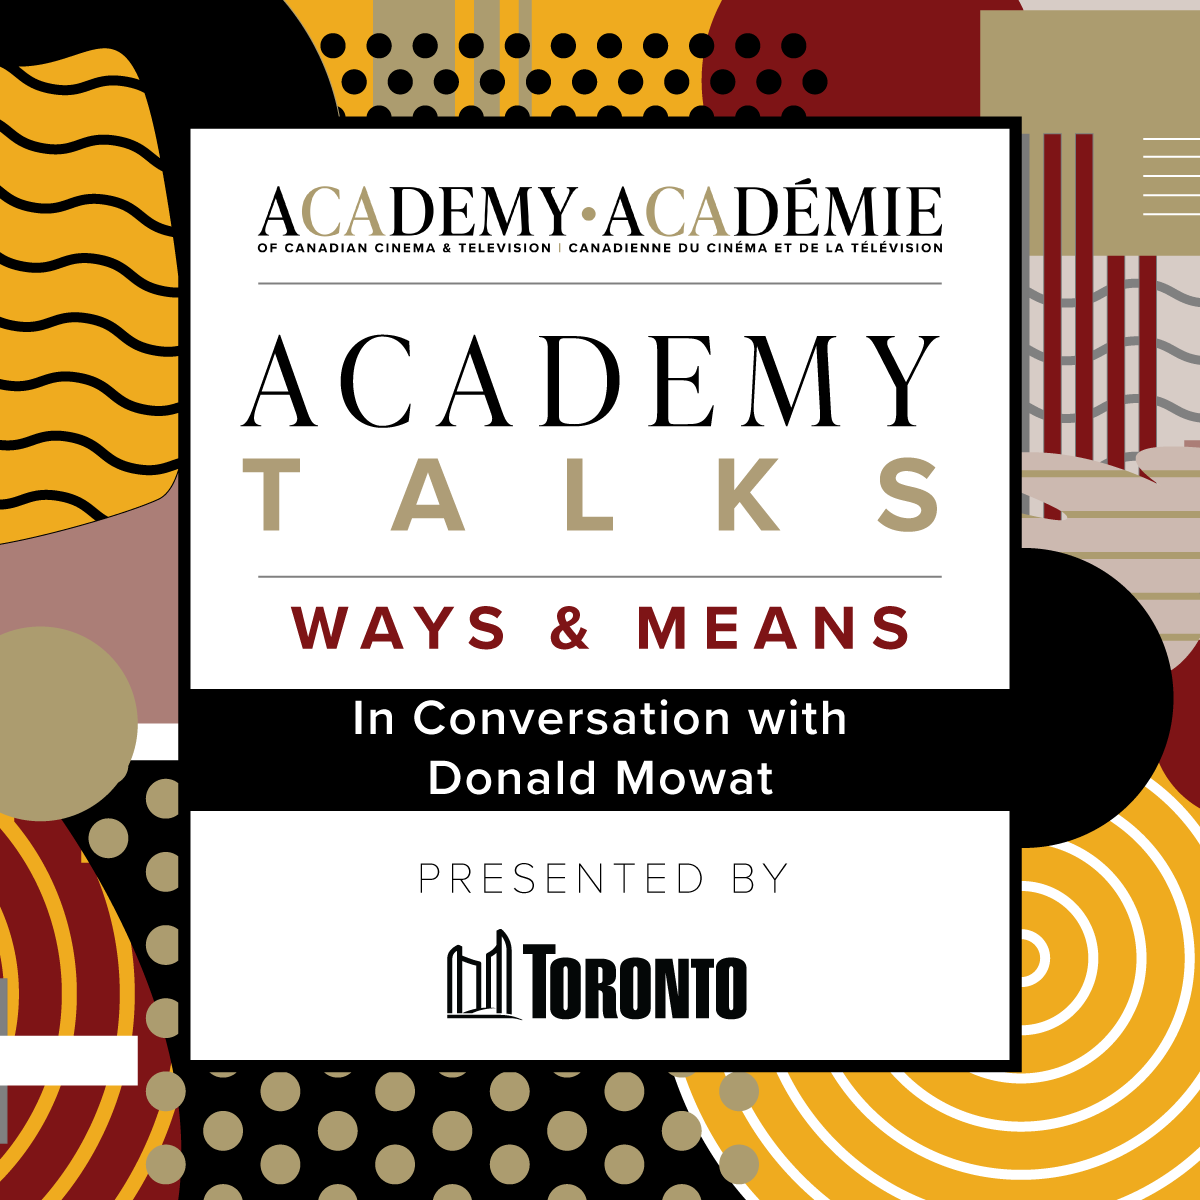 Academy Talks: Ways & Means | In Conversation with Donald Mowat